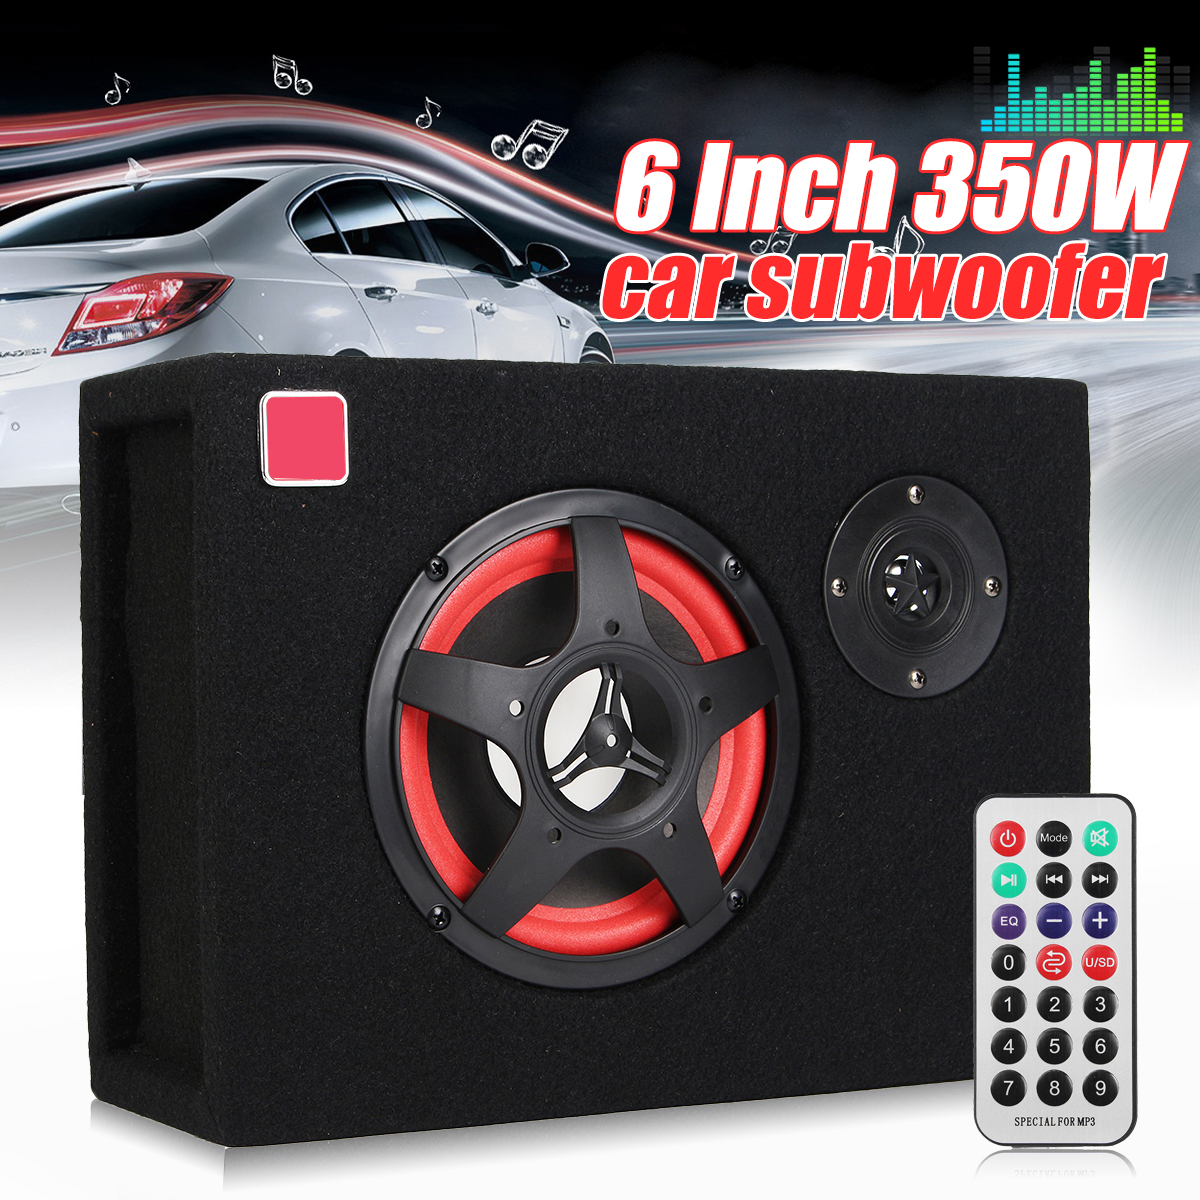 8 inch bluetooth car home subwoofer under seat sub 600w stereo subwoofer car audio speaker music system sound woofer 6 Inch Compact Car Active Amplified Under Seat Powered Subwoofer Bass Speaker 350W Car Subwoofer Speaker Audio Stereo